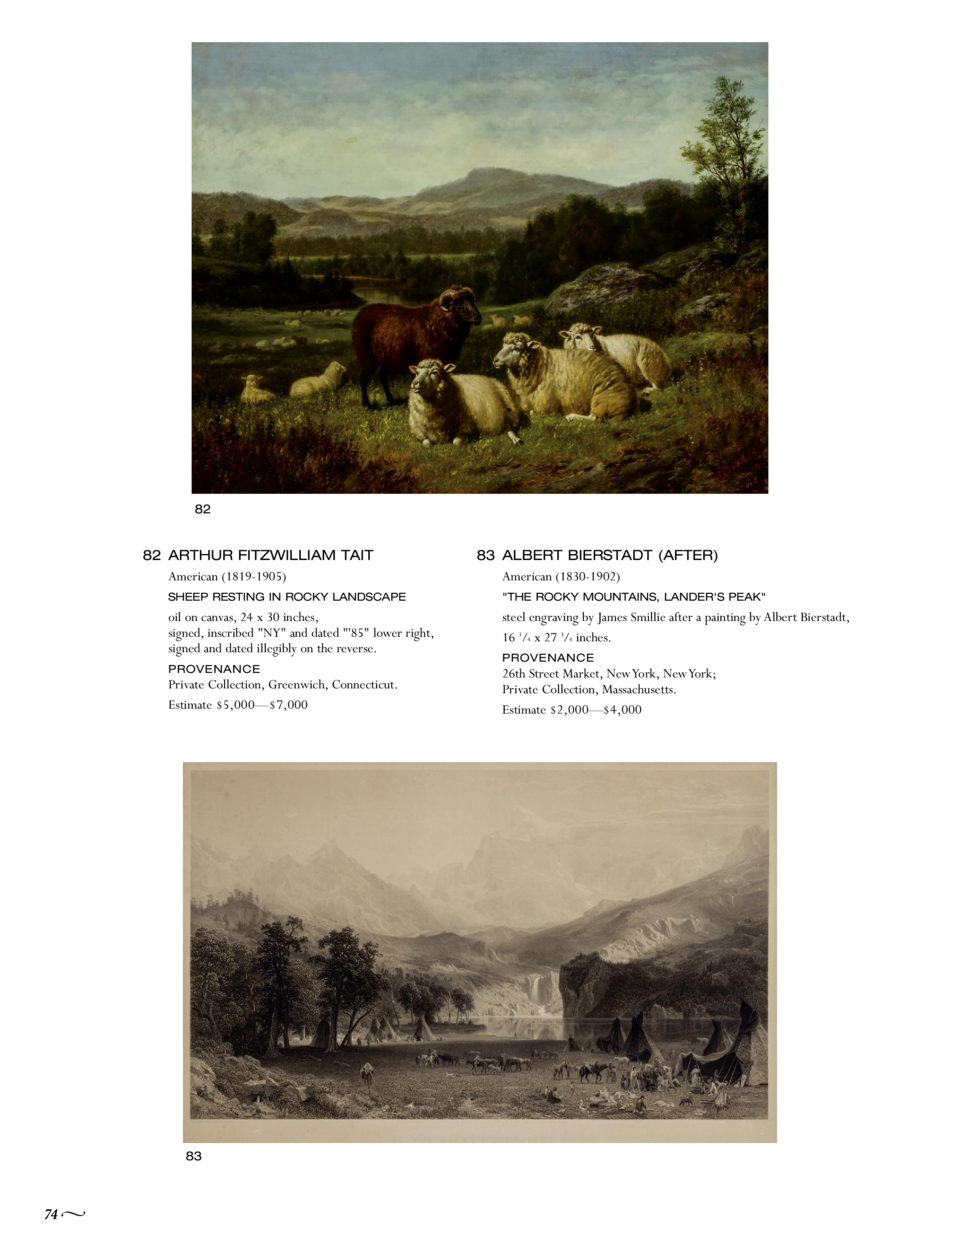 82  82 ARTHUR FITZWILLIAM TAIT American  1819-1905  SHEEP RESTING IN ROCKY LANDSCAPE  oil on canvas, 24 x 30 inches, signe...